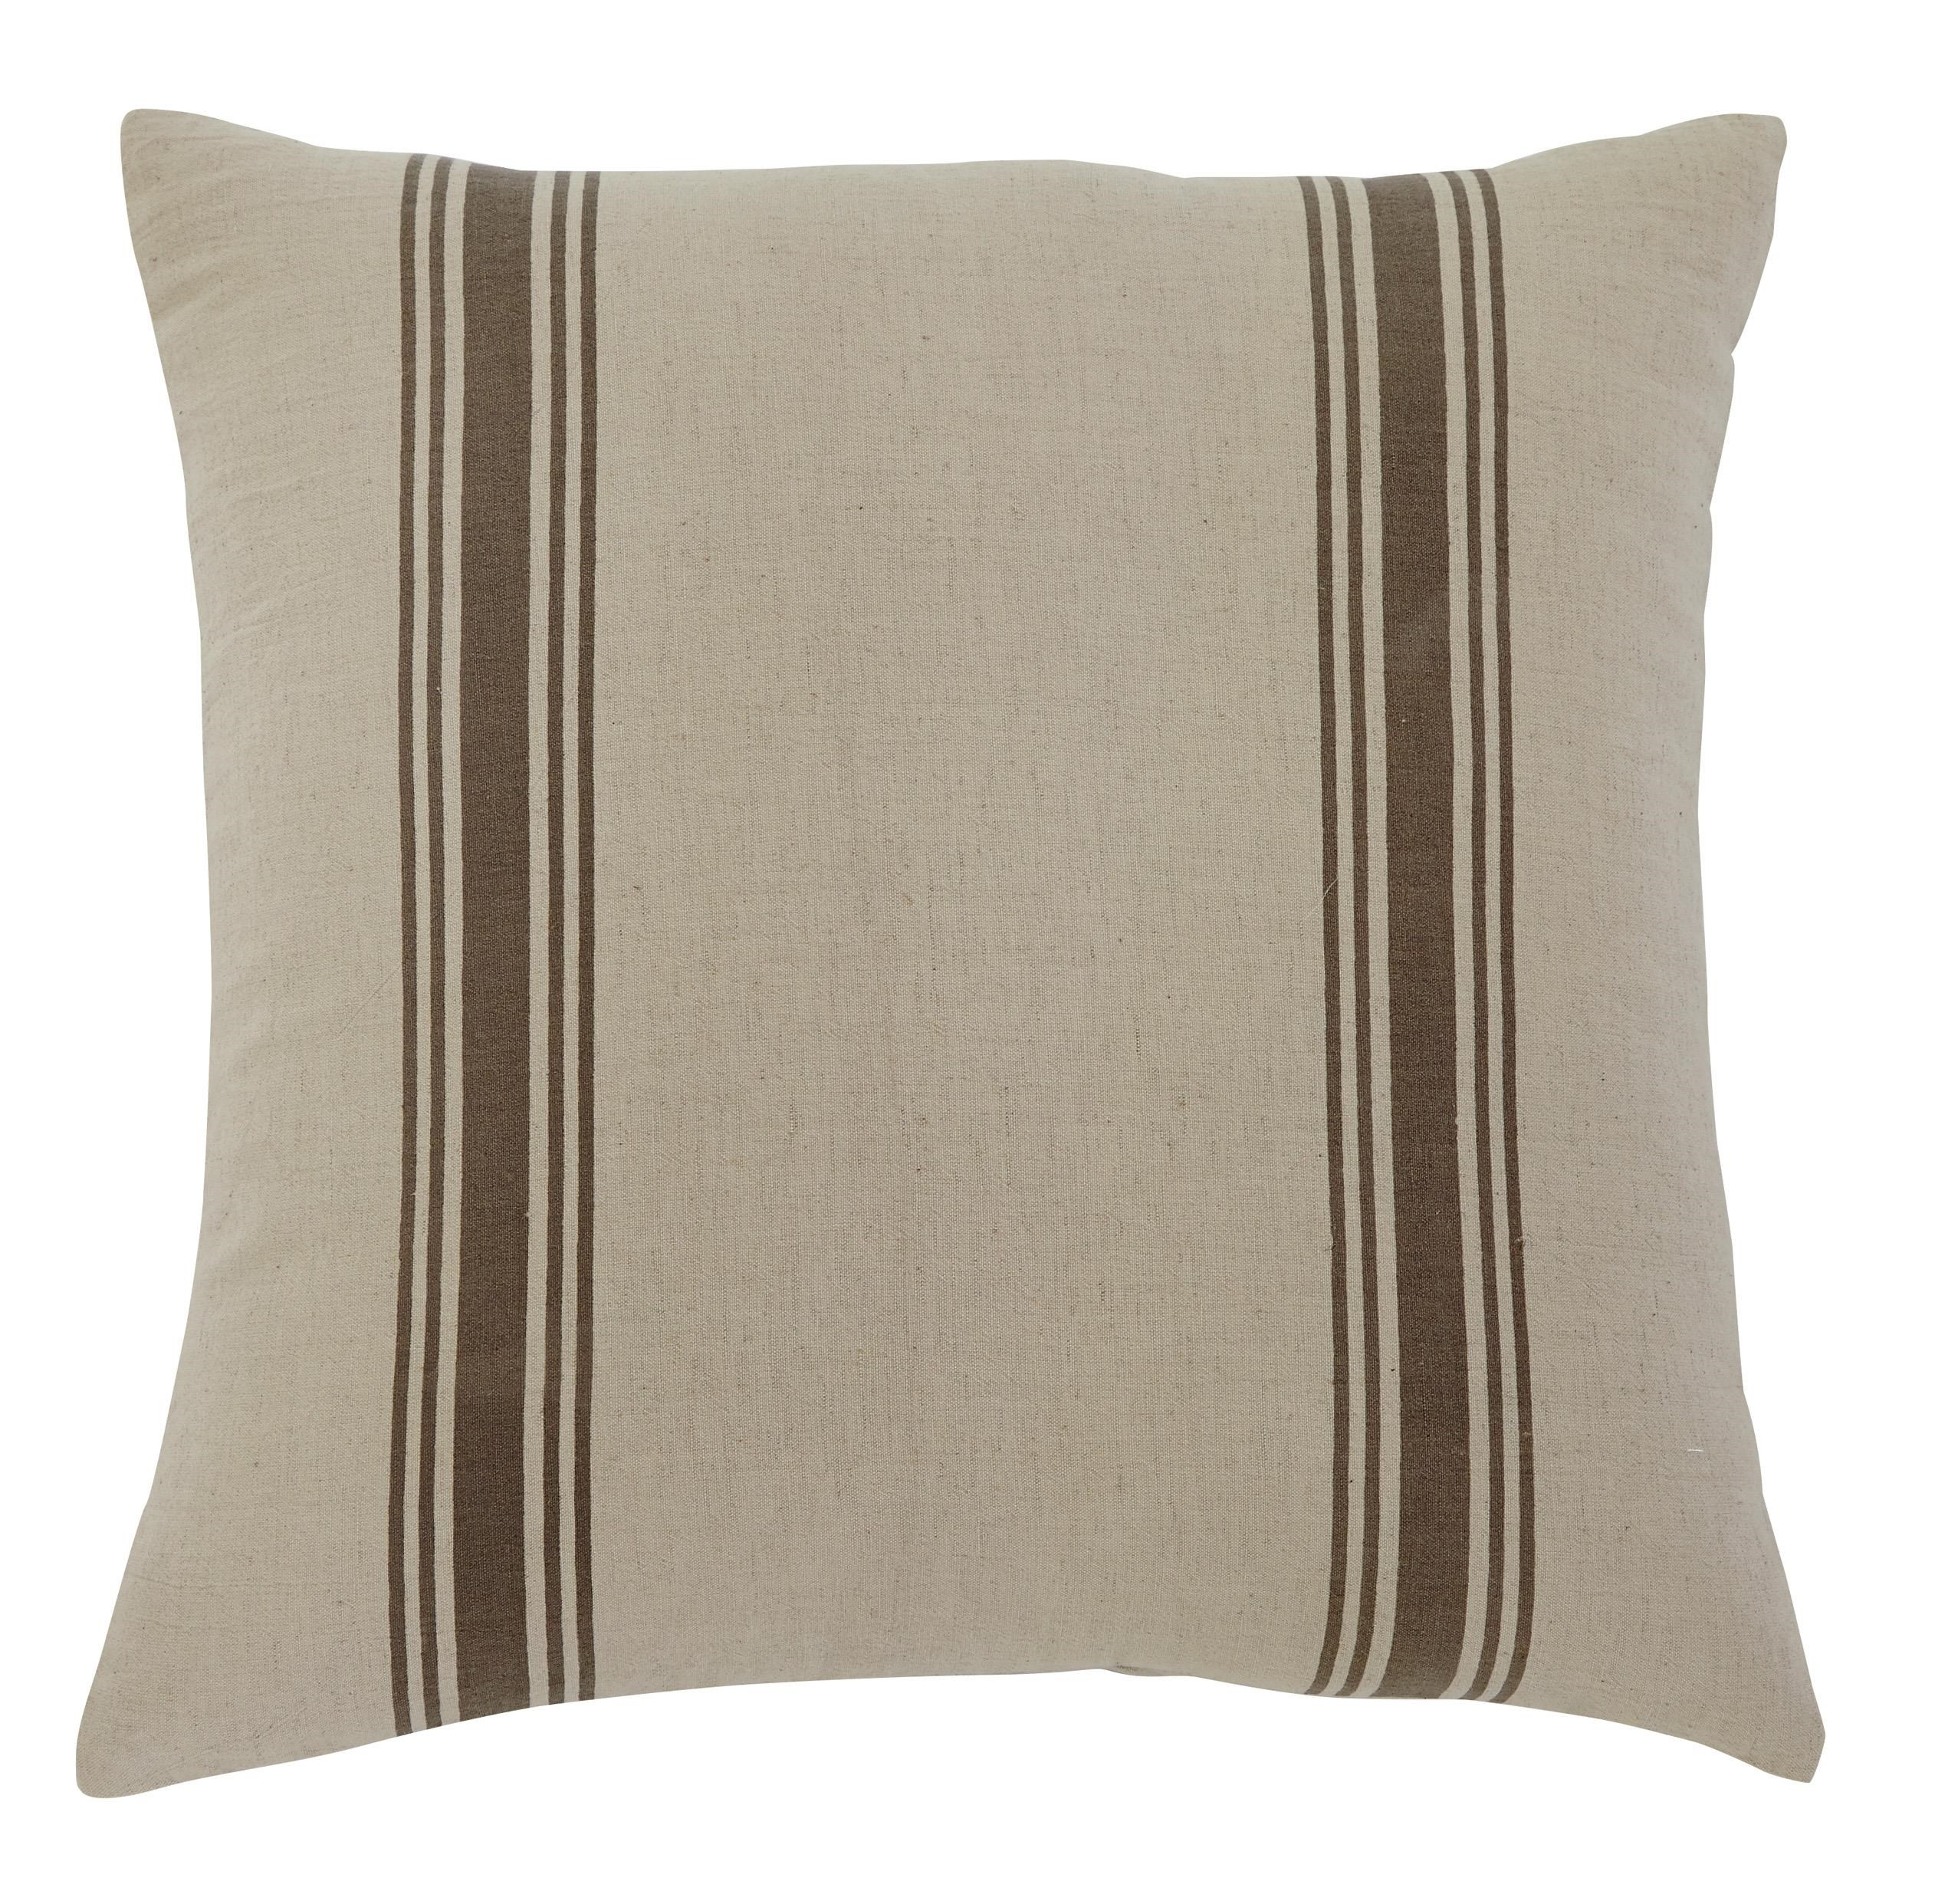 Signature Design by Ashley Pillows Striped Natural